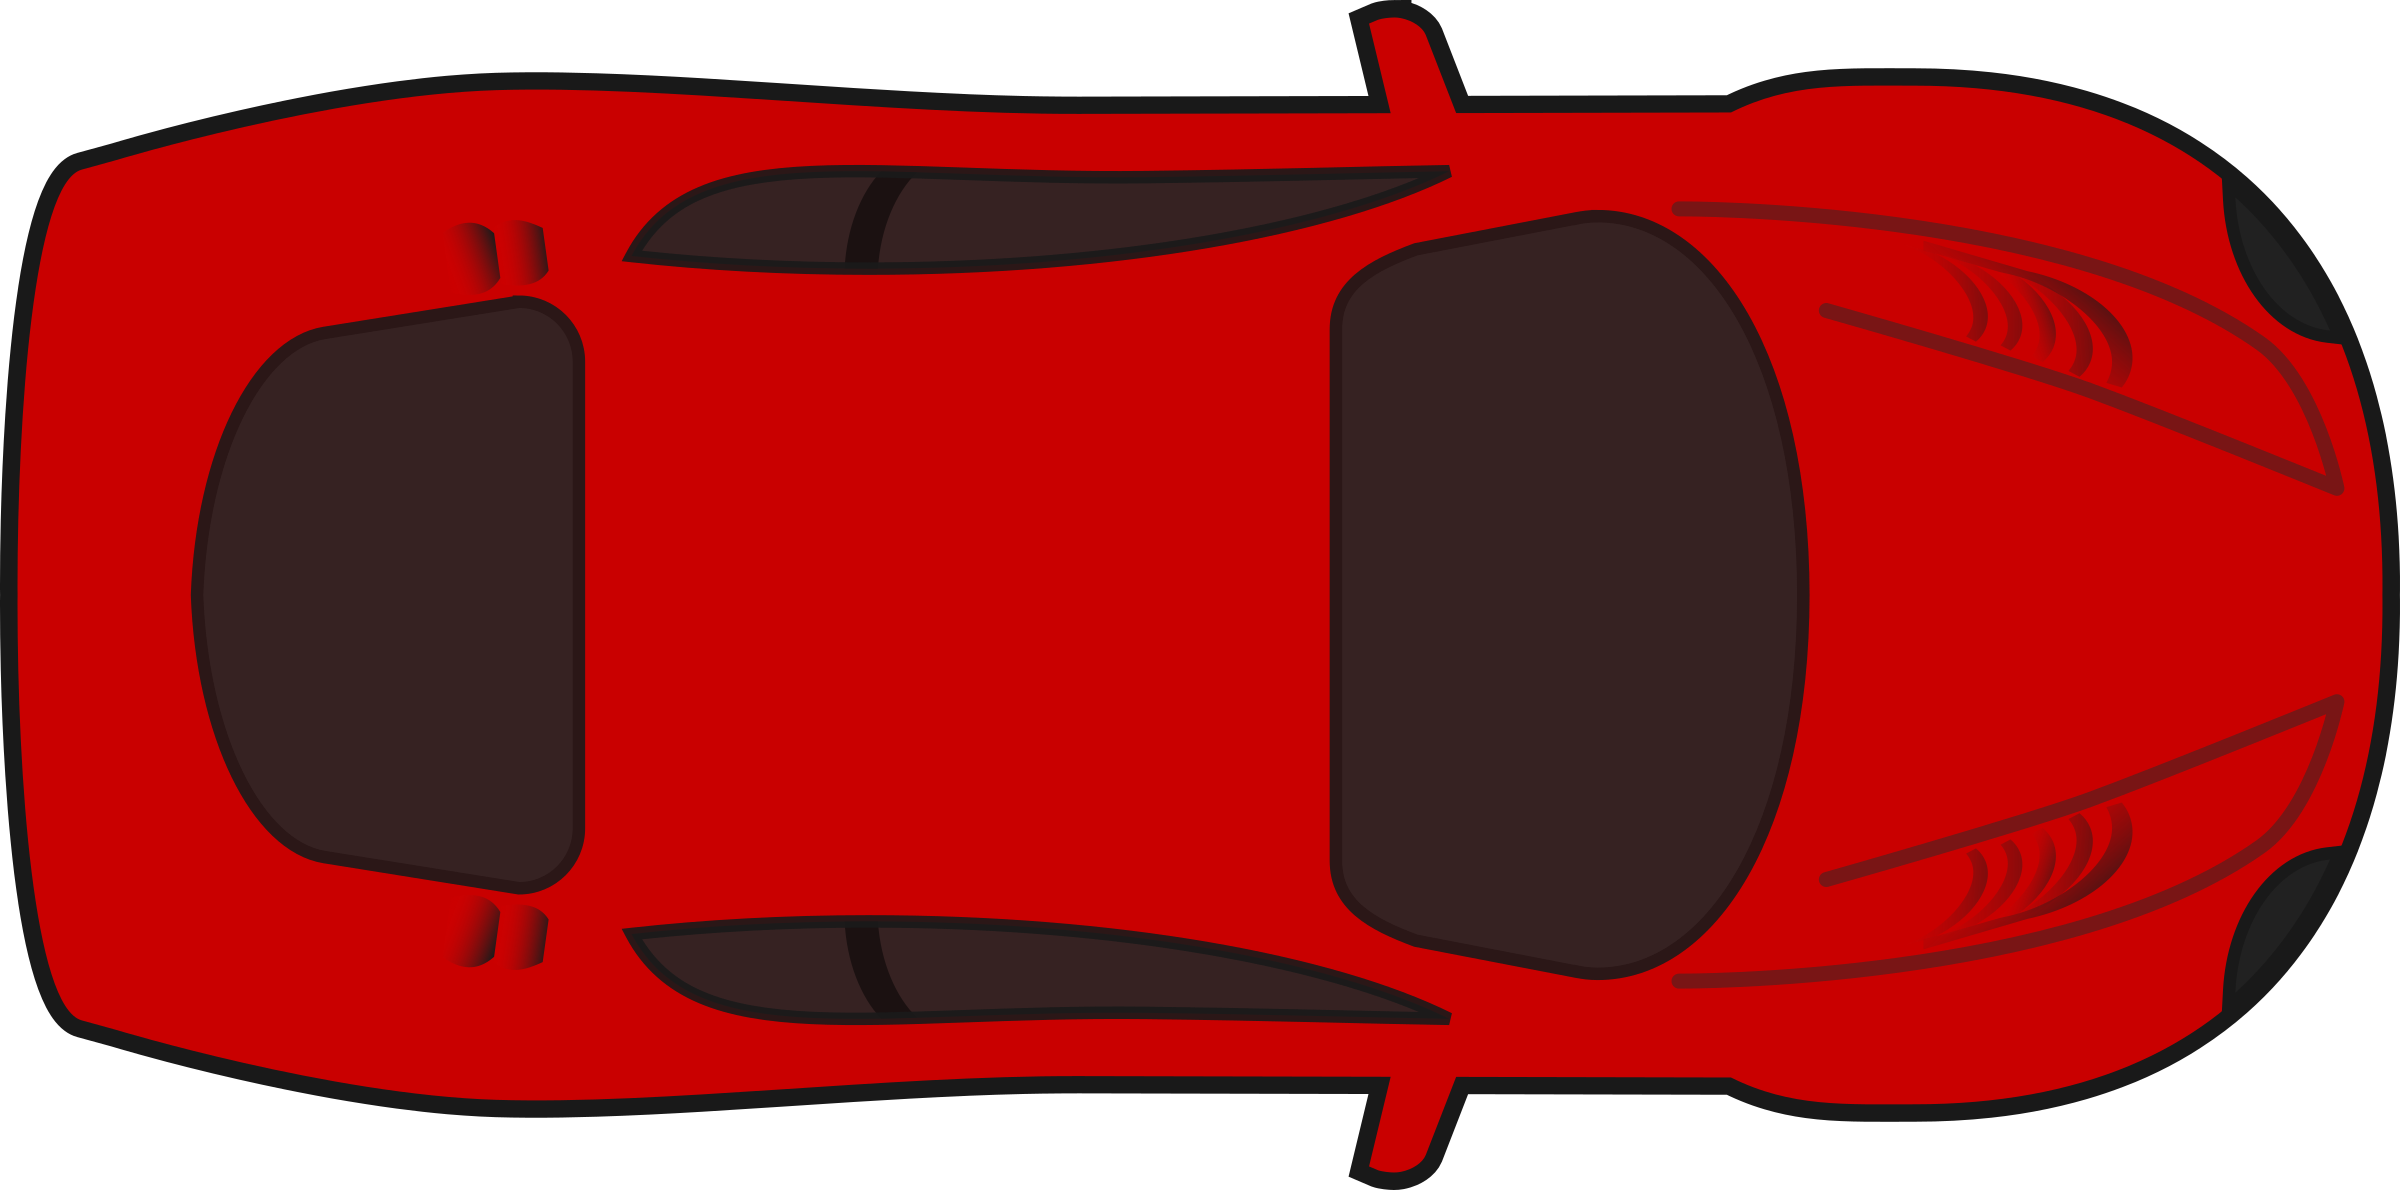 Race car sprite png. Clipart red racing top